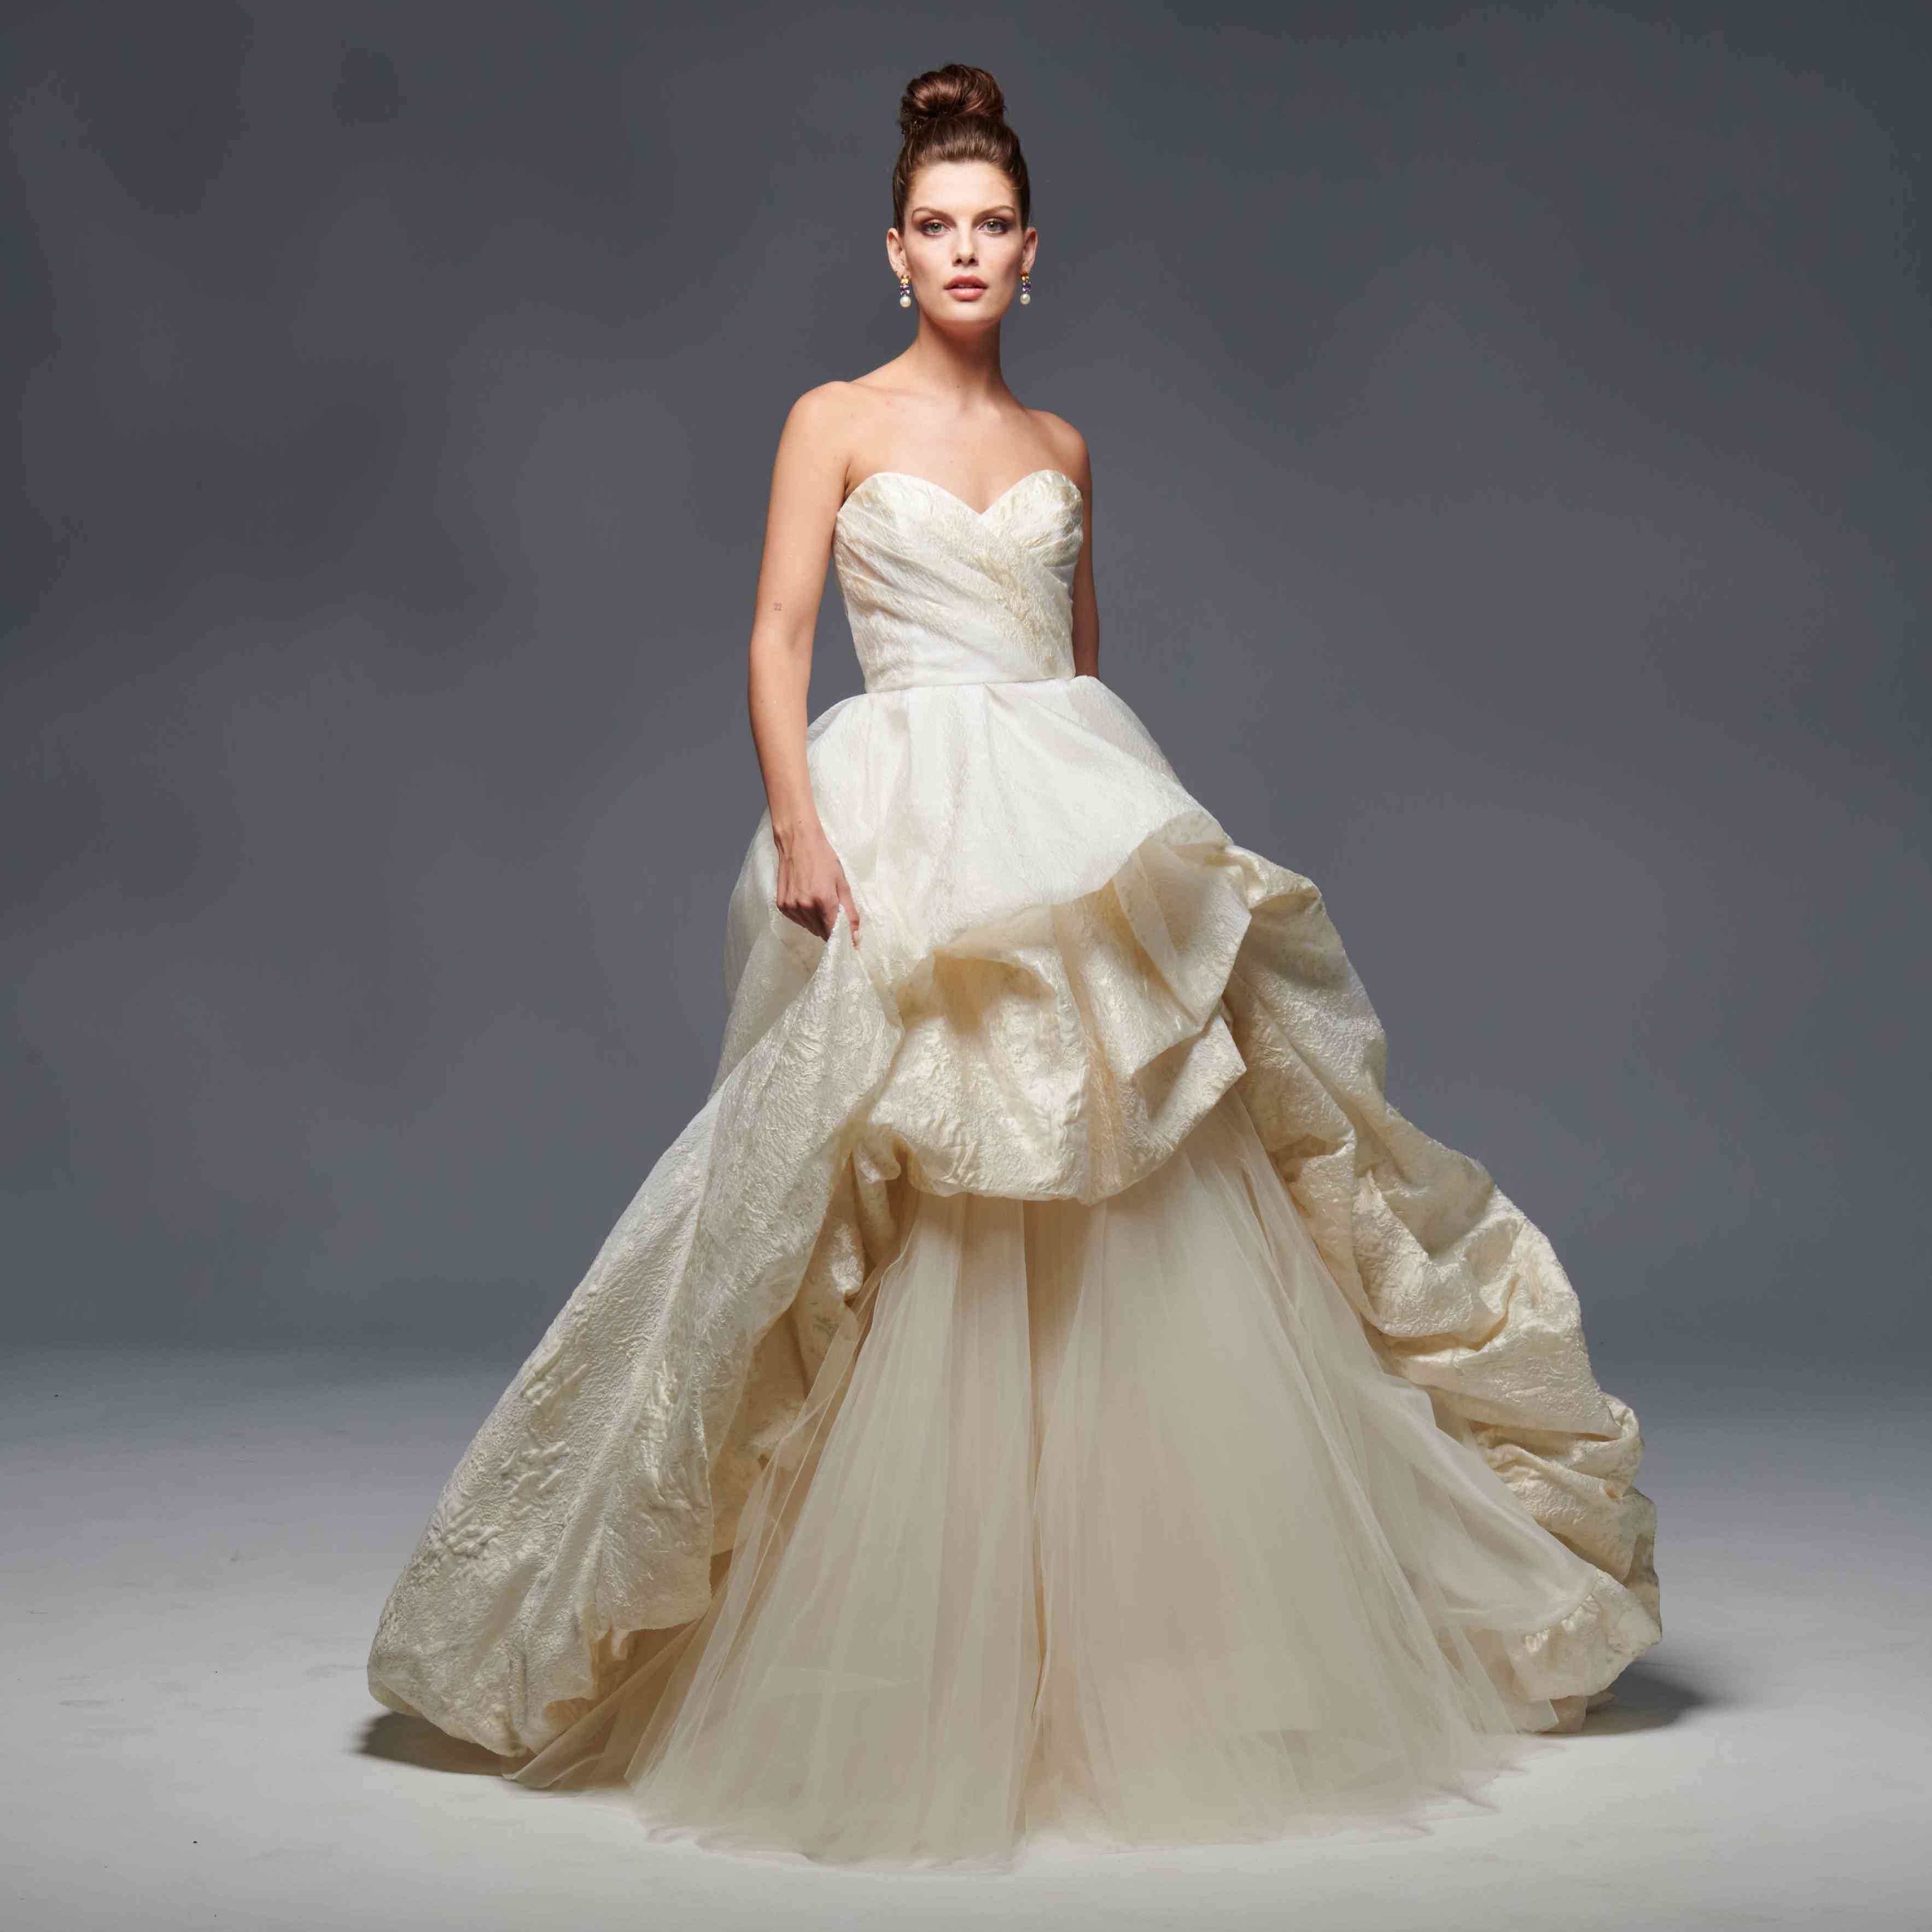 Bethany strapless sweetheart wedding ball gown